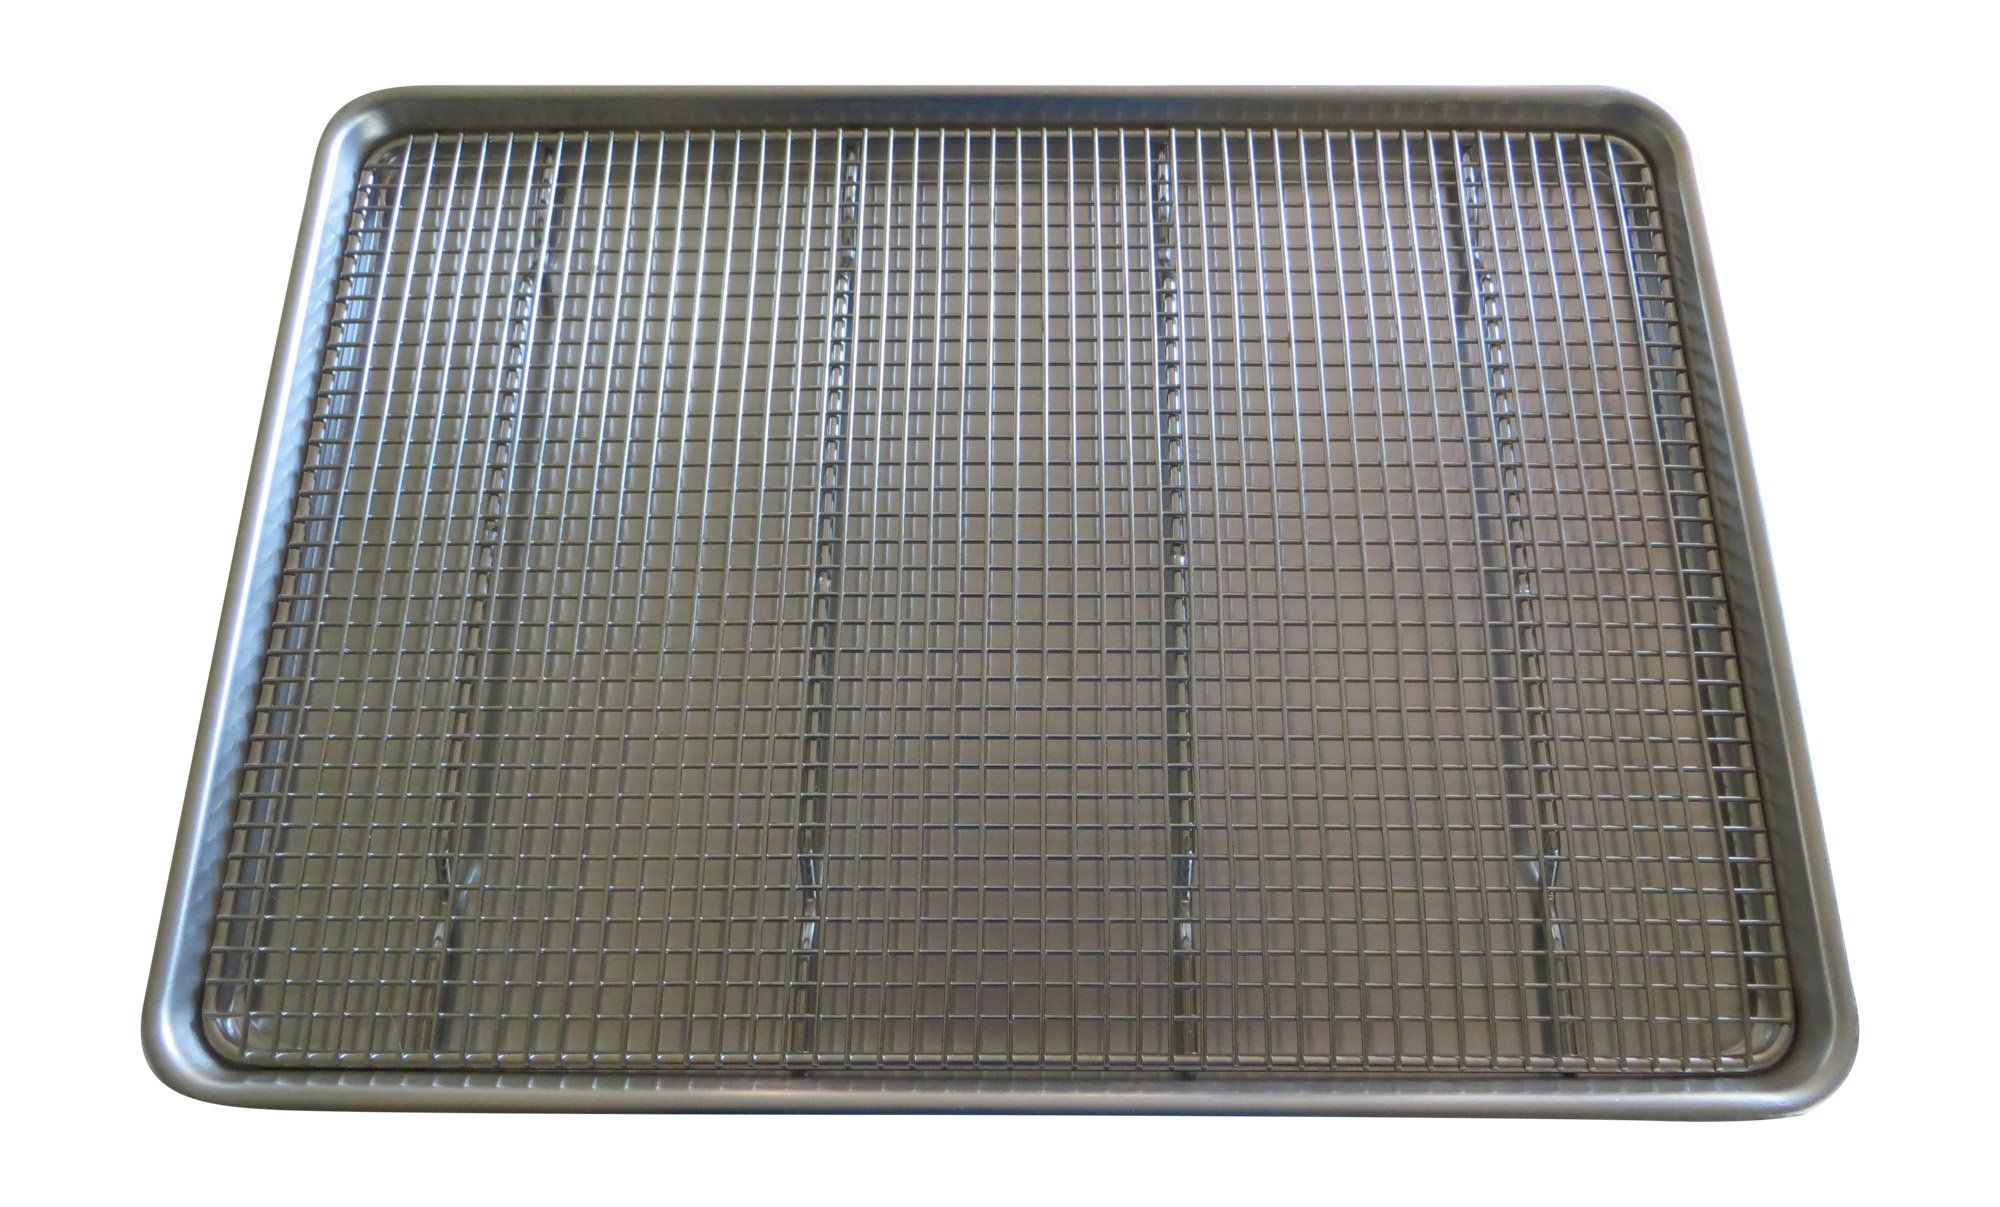 Stainless Steel Wire Cooling Rack14x20ultra Heavy Duty Commercial